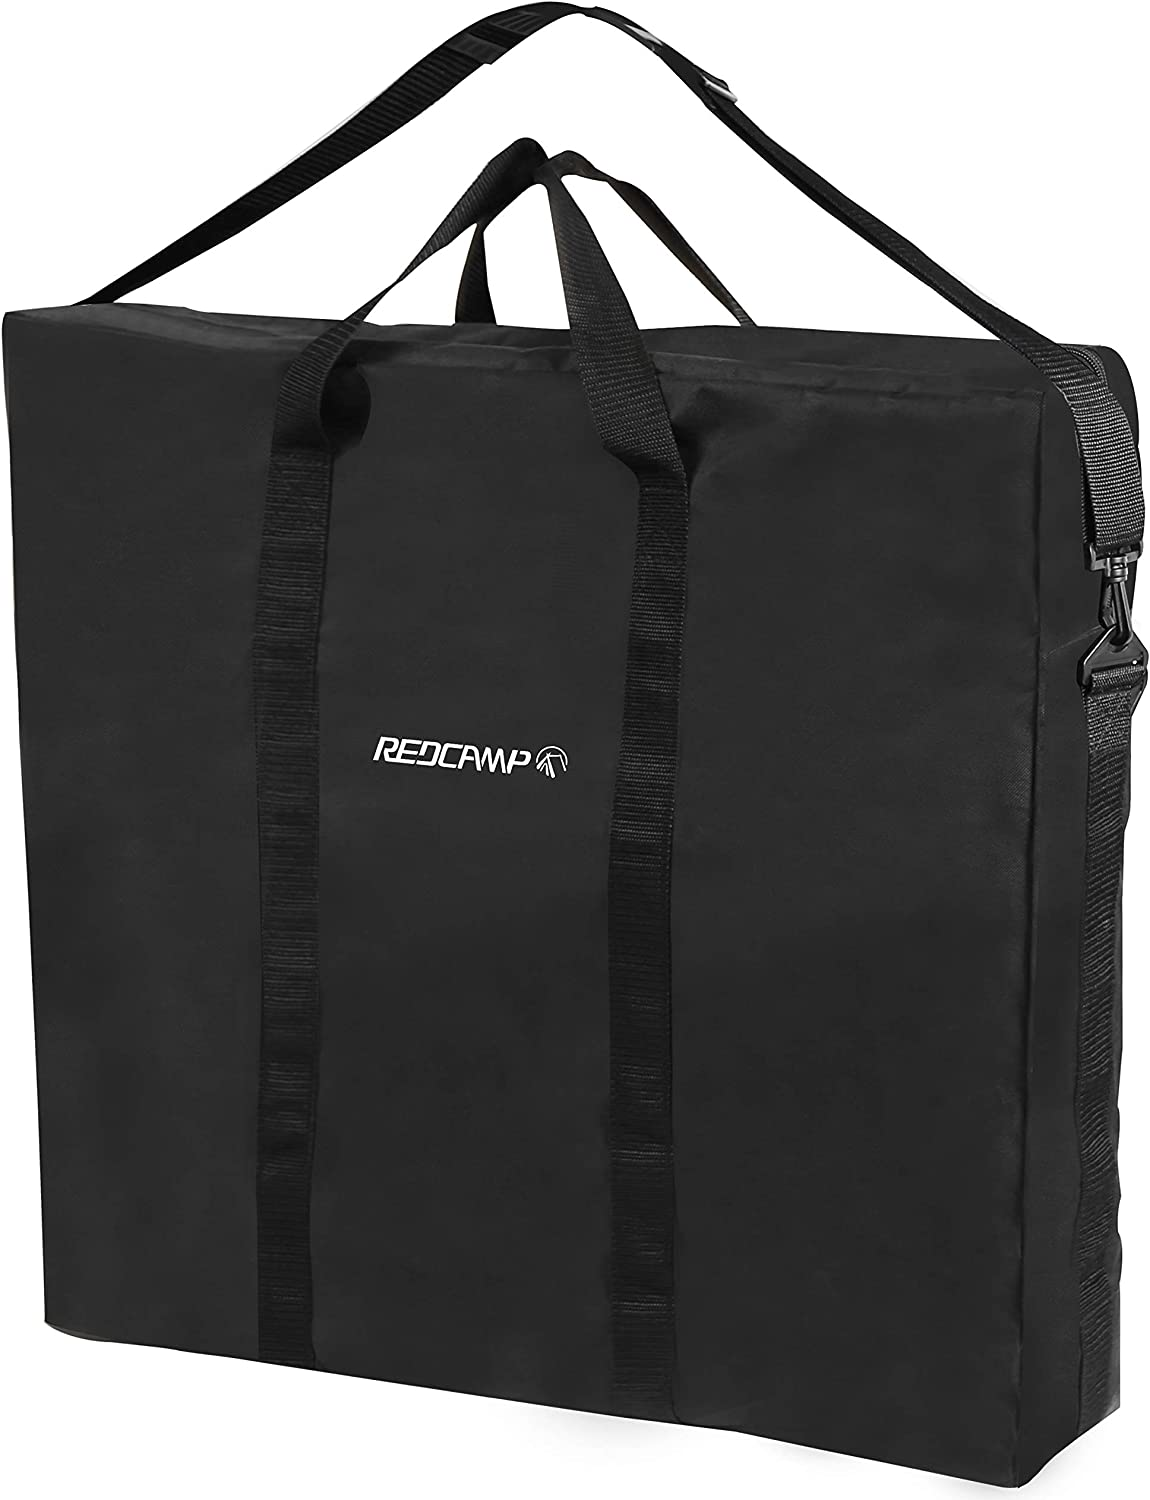 REDCAMP Oxford Carry Bag for Folding Table, Extra Large Strong Heavy Duty Storage Bag with Handles, 26x25 inches Black